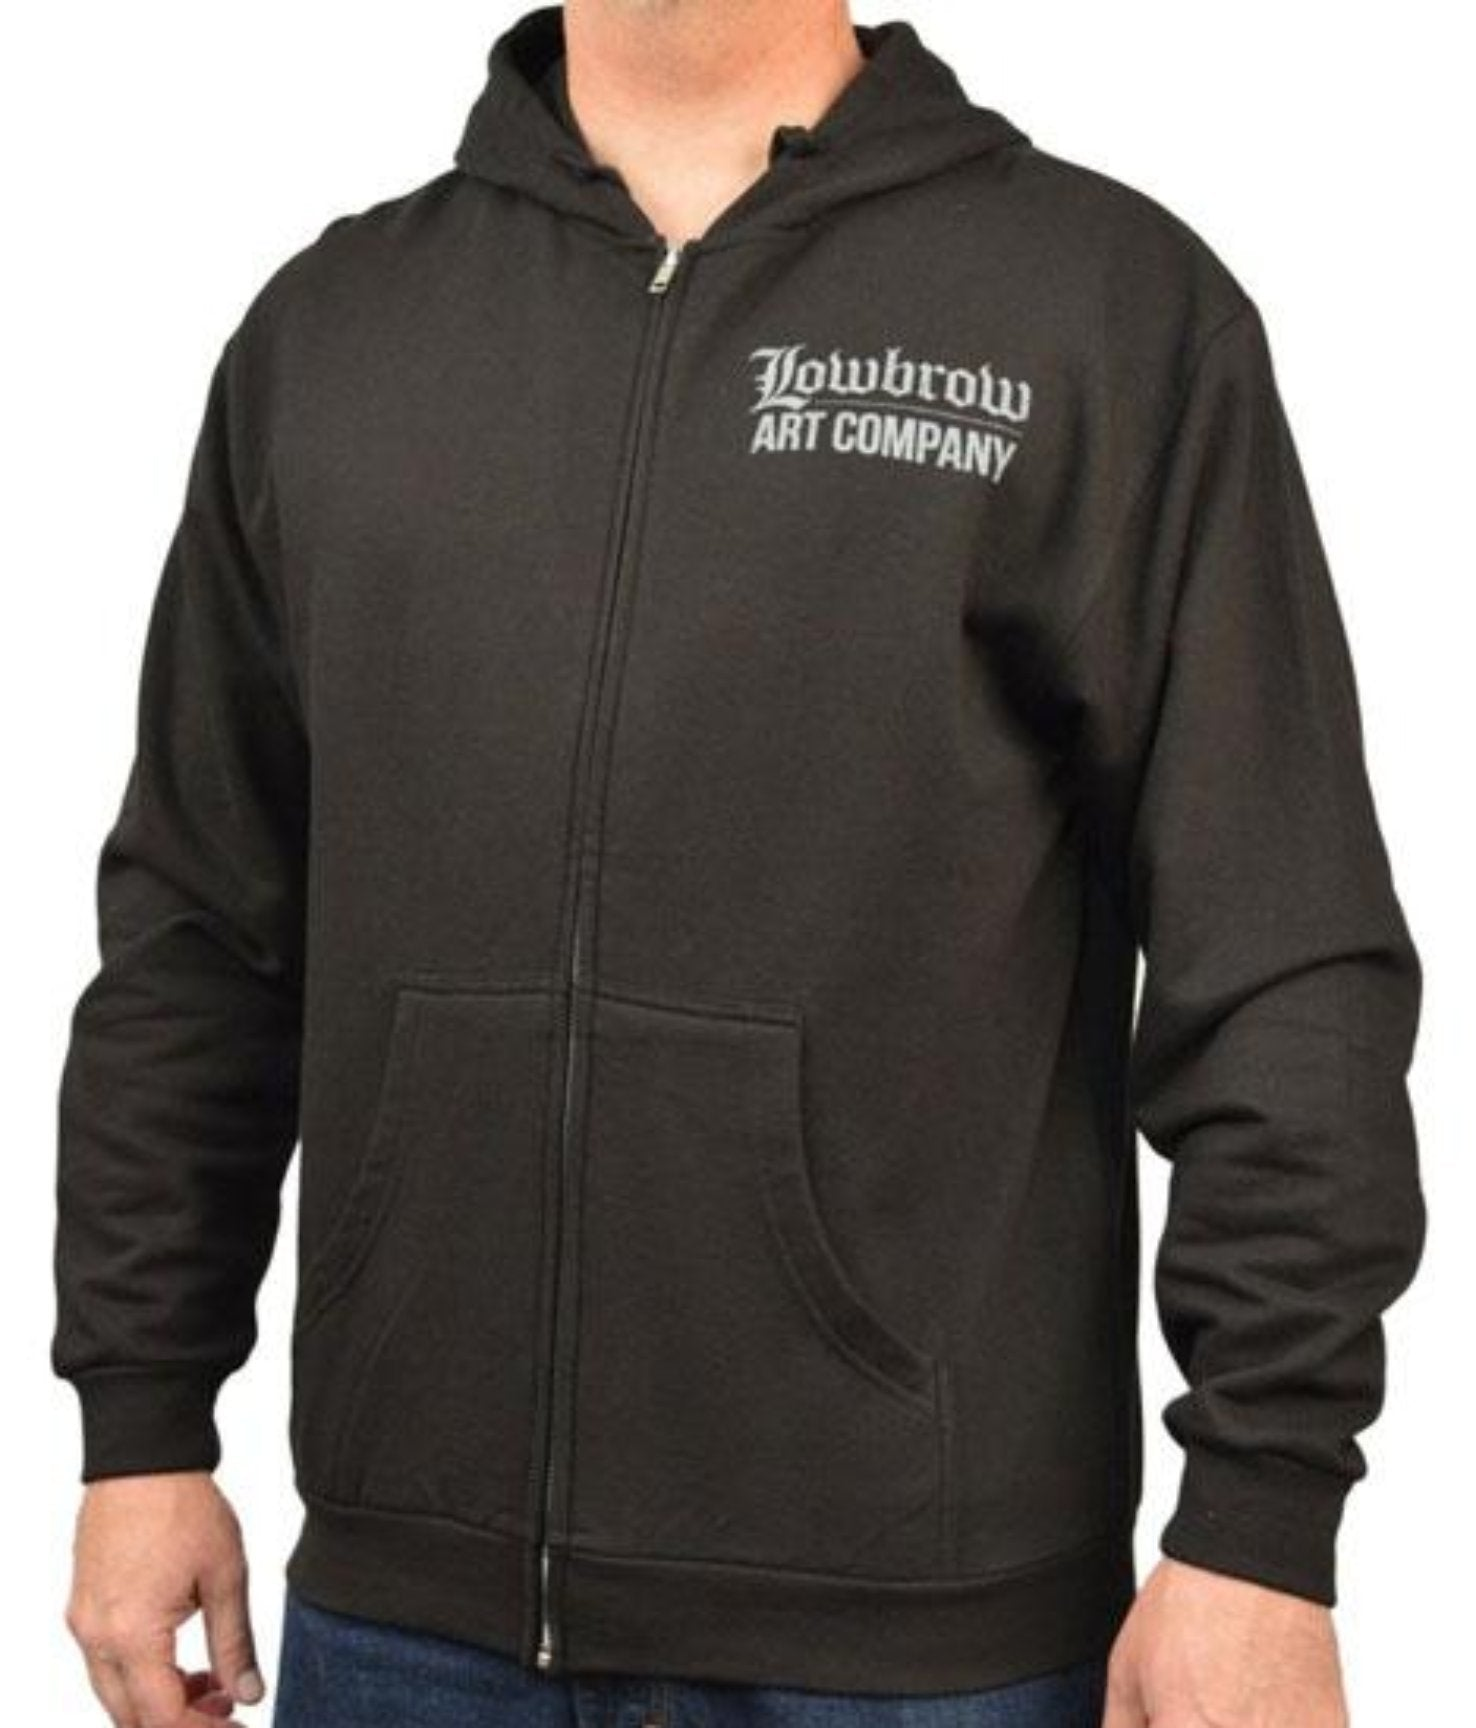 The SPEED DEMON Hooded Full Zip Sweatshirt